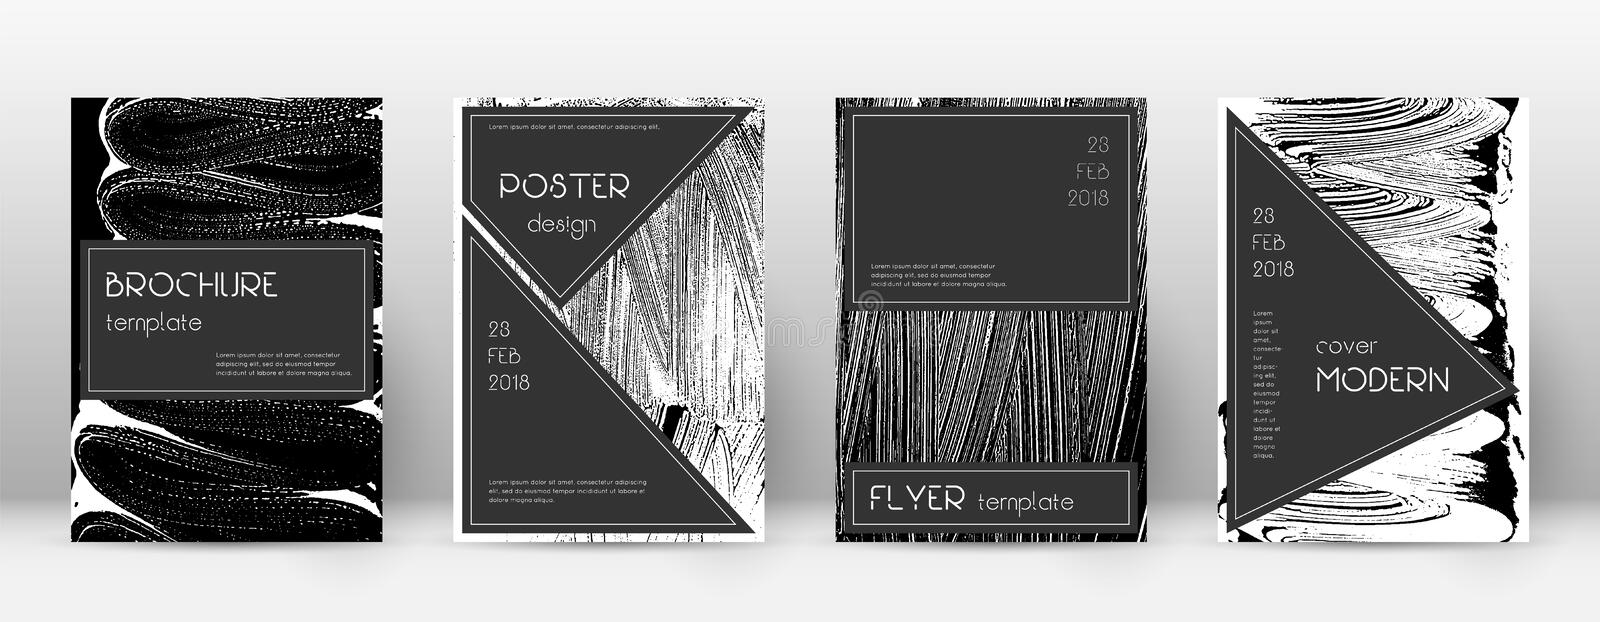 Cover page design template. Black brochure layout. Beauteous trendy abstract cover page. Black and w. Hite grunge texture background. Incredible poster vector illustration